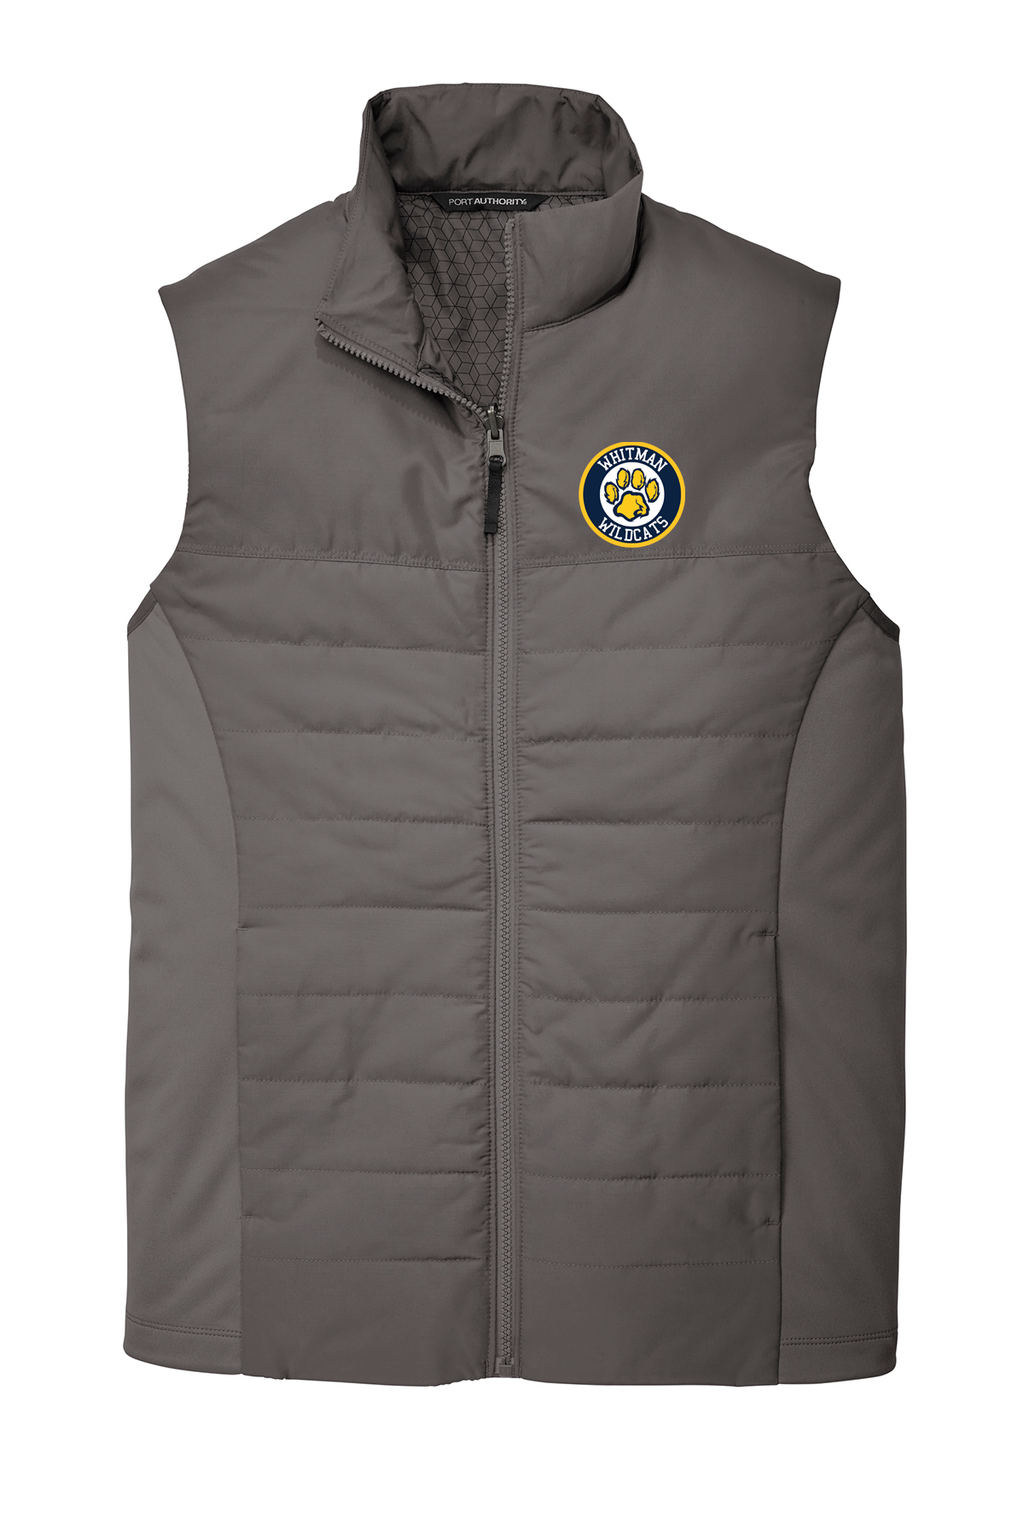 Whitman Wildcats Vest